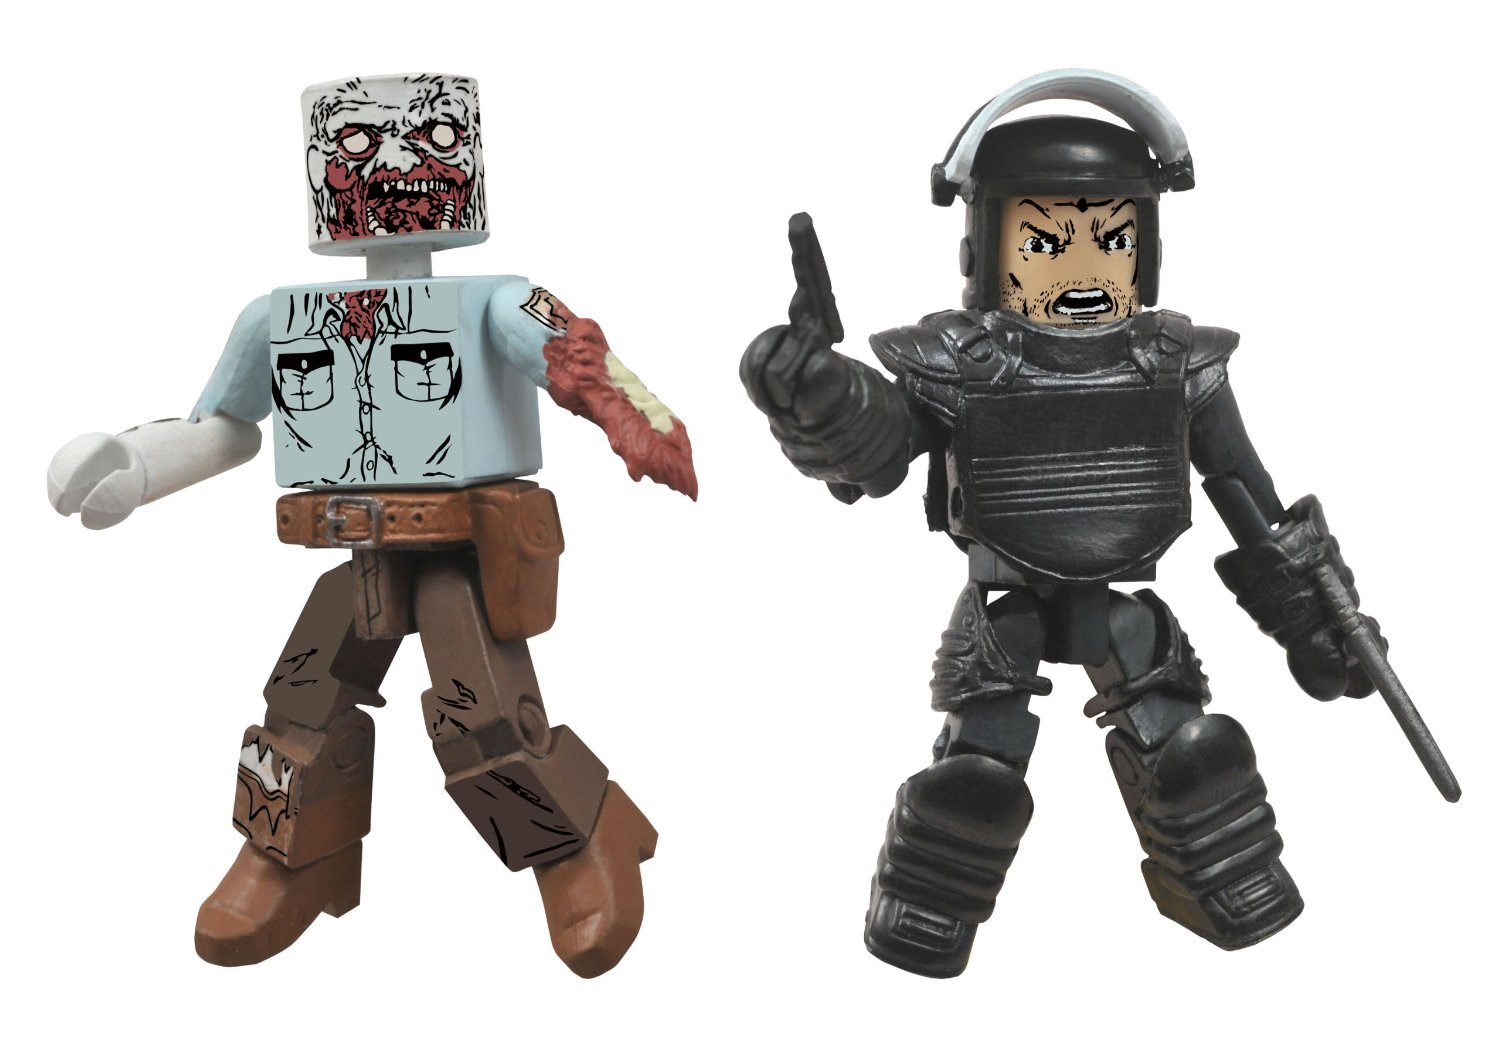 Walking Dead Minimates Riot Gear Rick and Guard Zombie